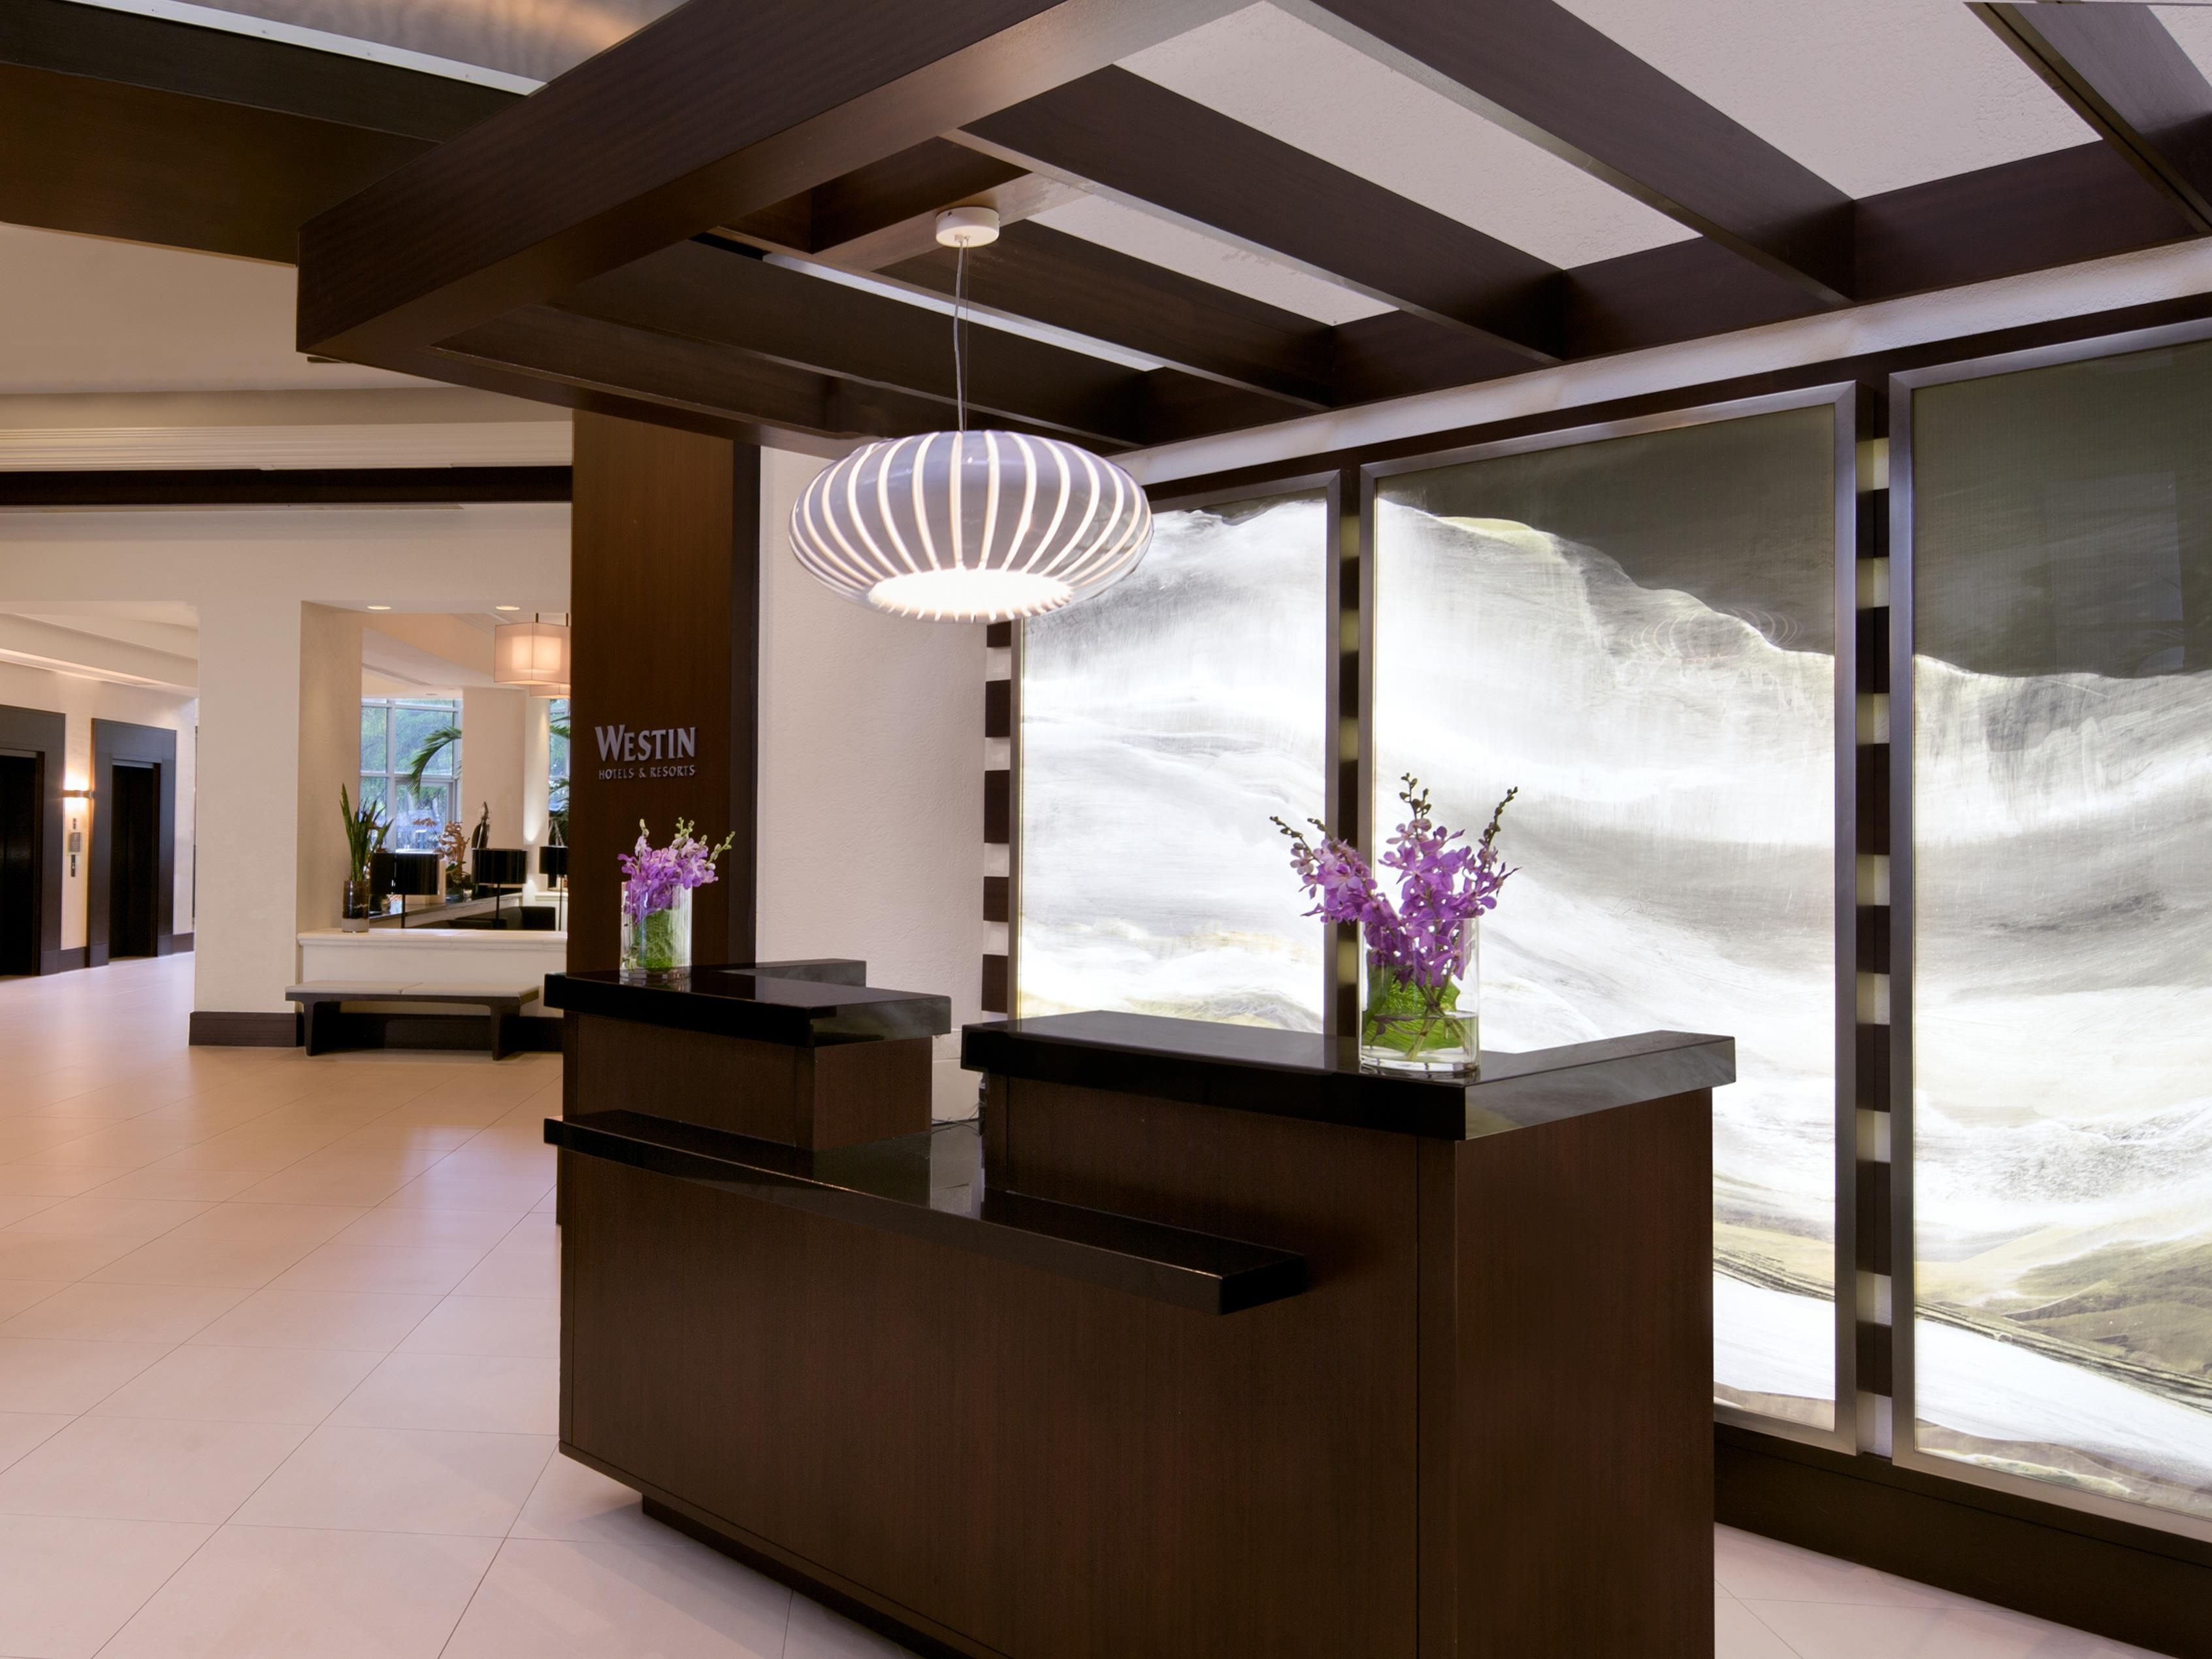 The Westin Fort Lauderdale image 27